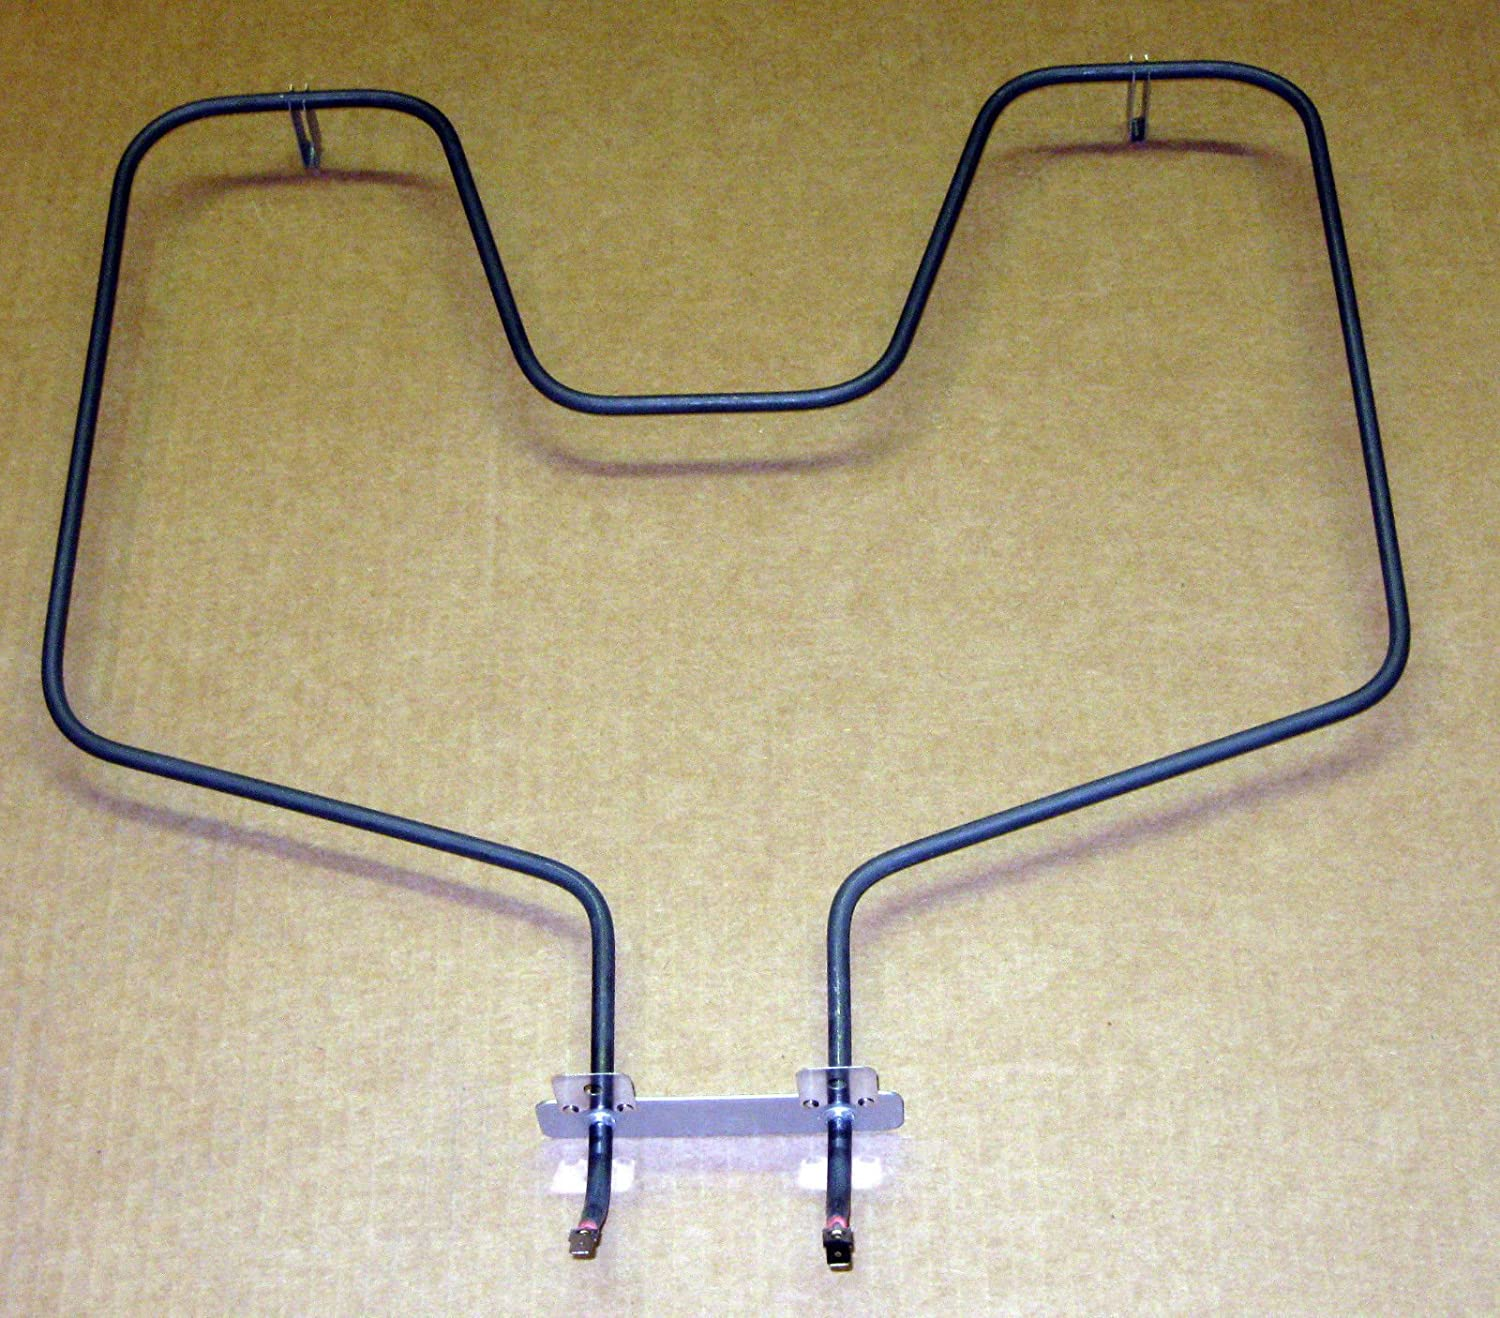 5 Oven Bake Unit Lower Heating Element for GE WB44K5012